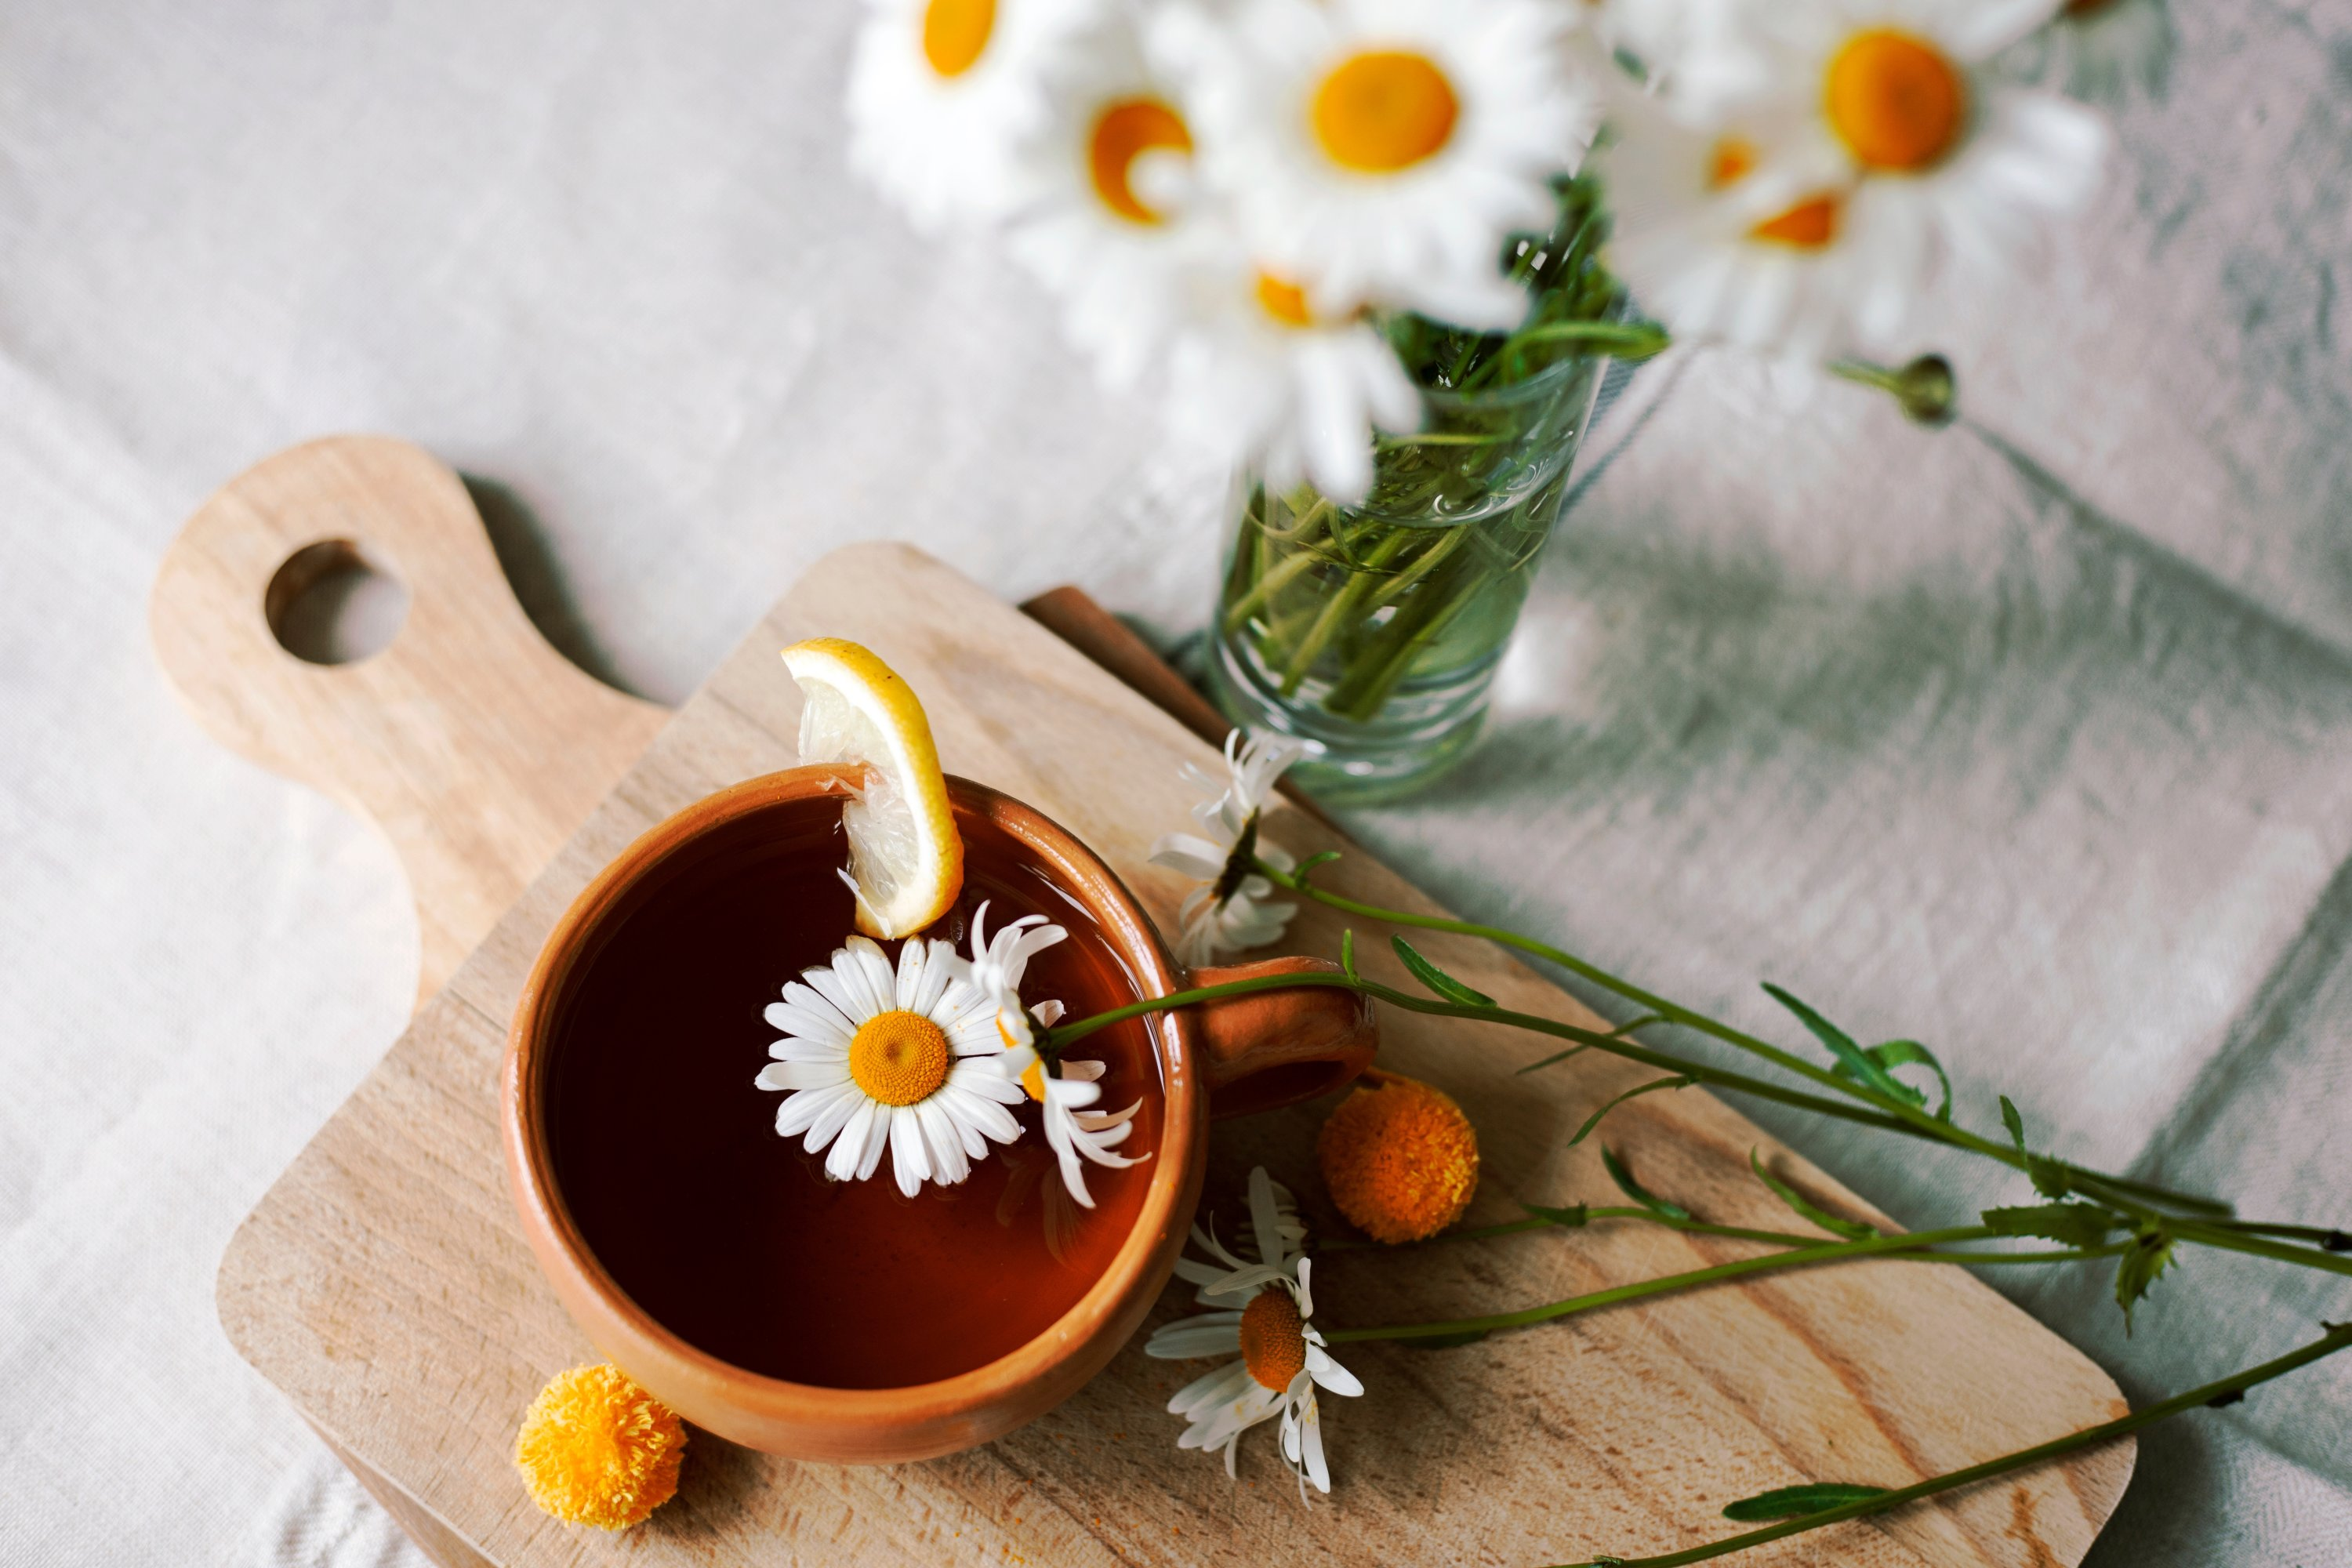 Chamomile tea is an excellent stress reliever. (Shutterstock Photo)